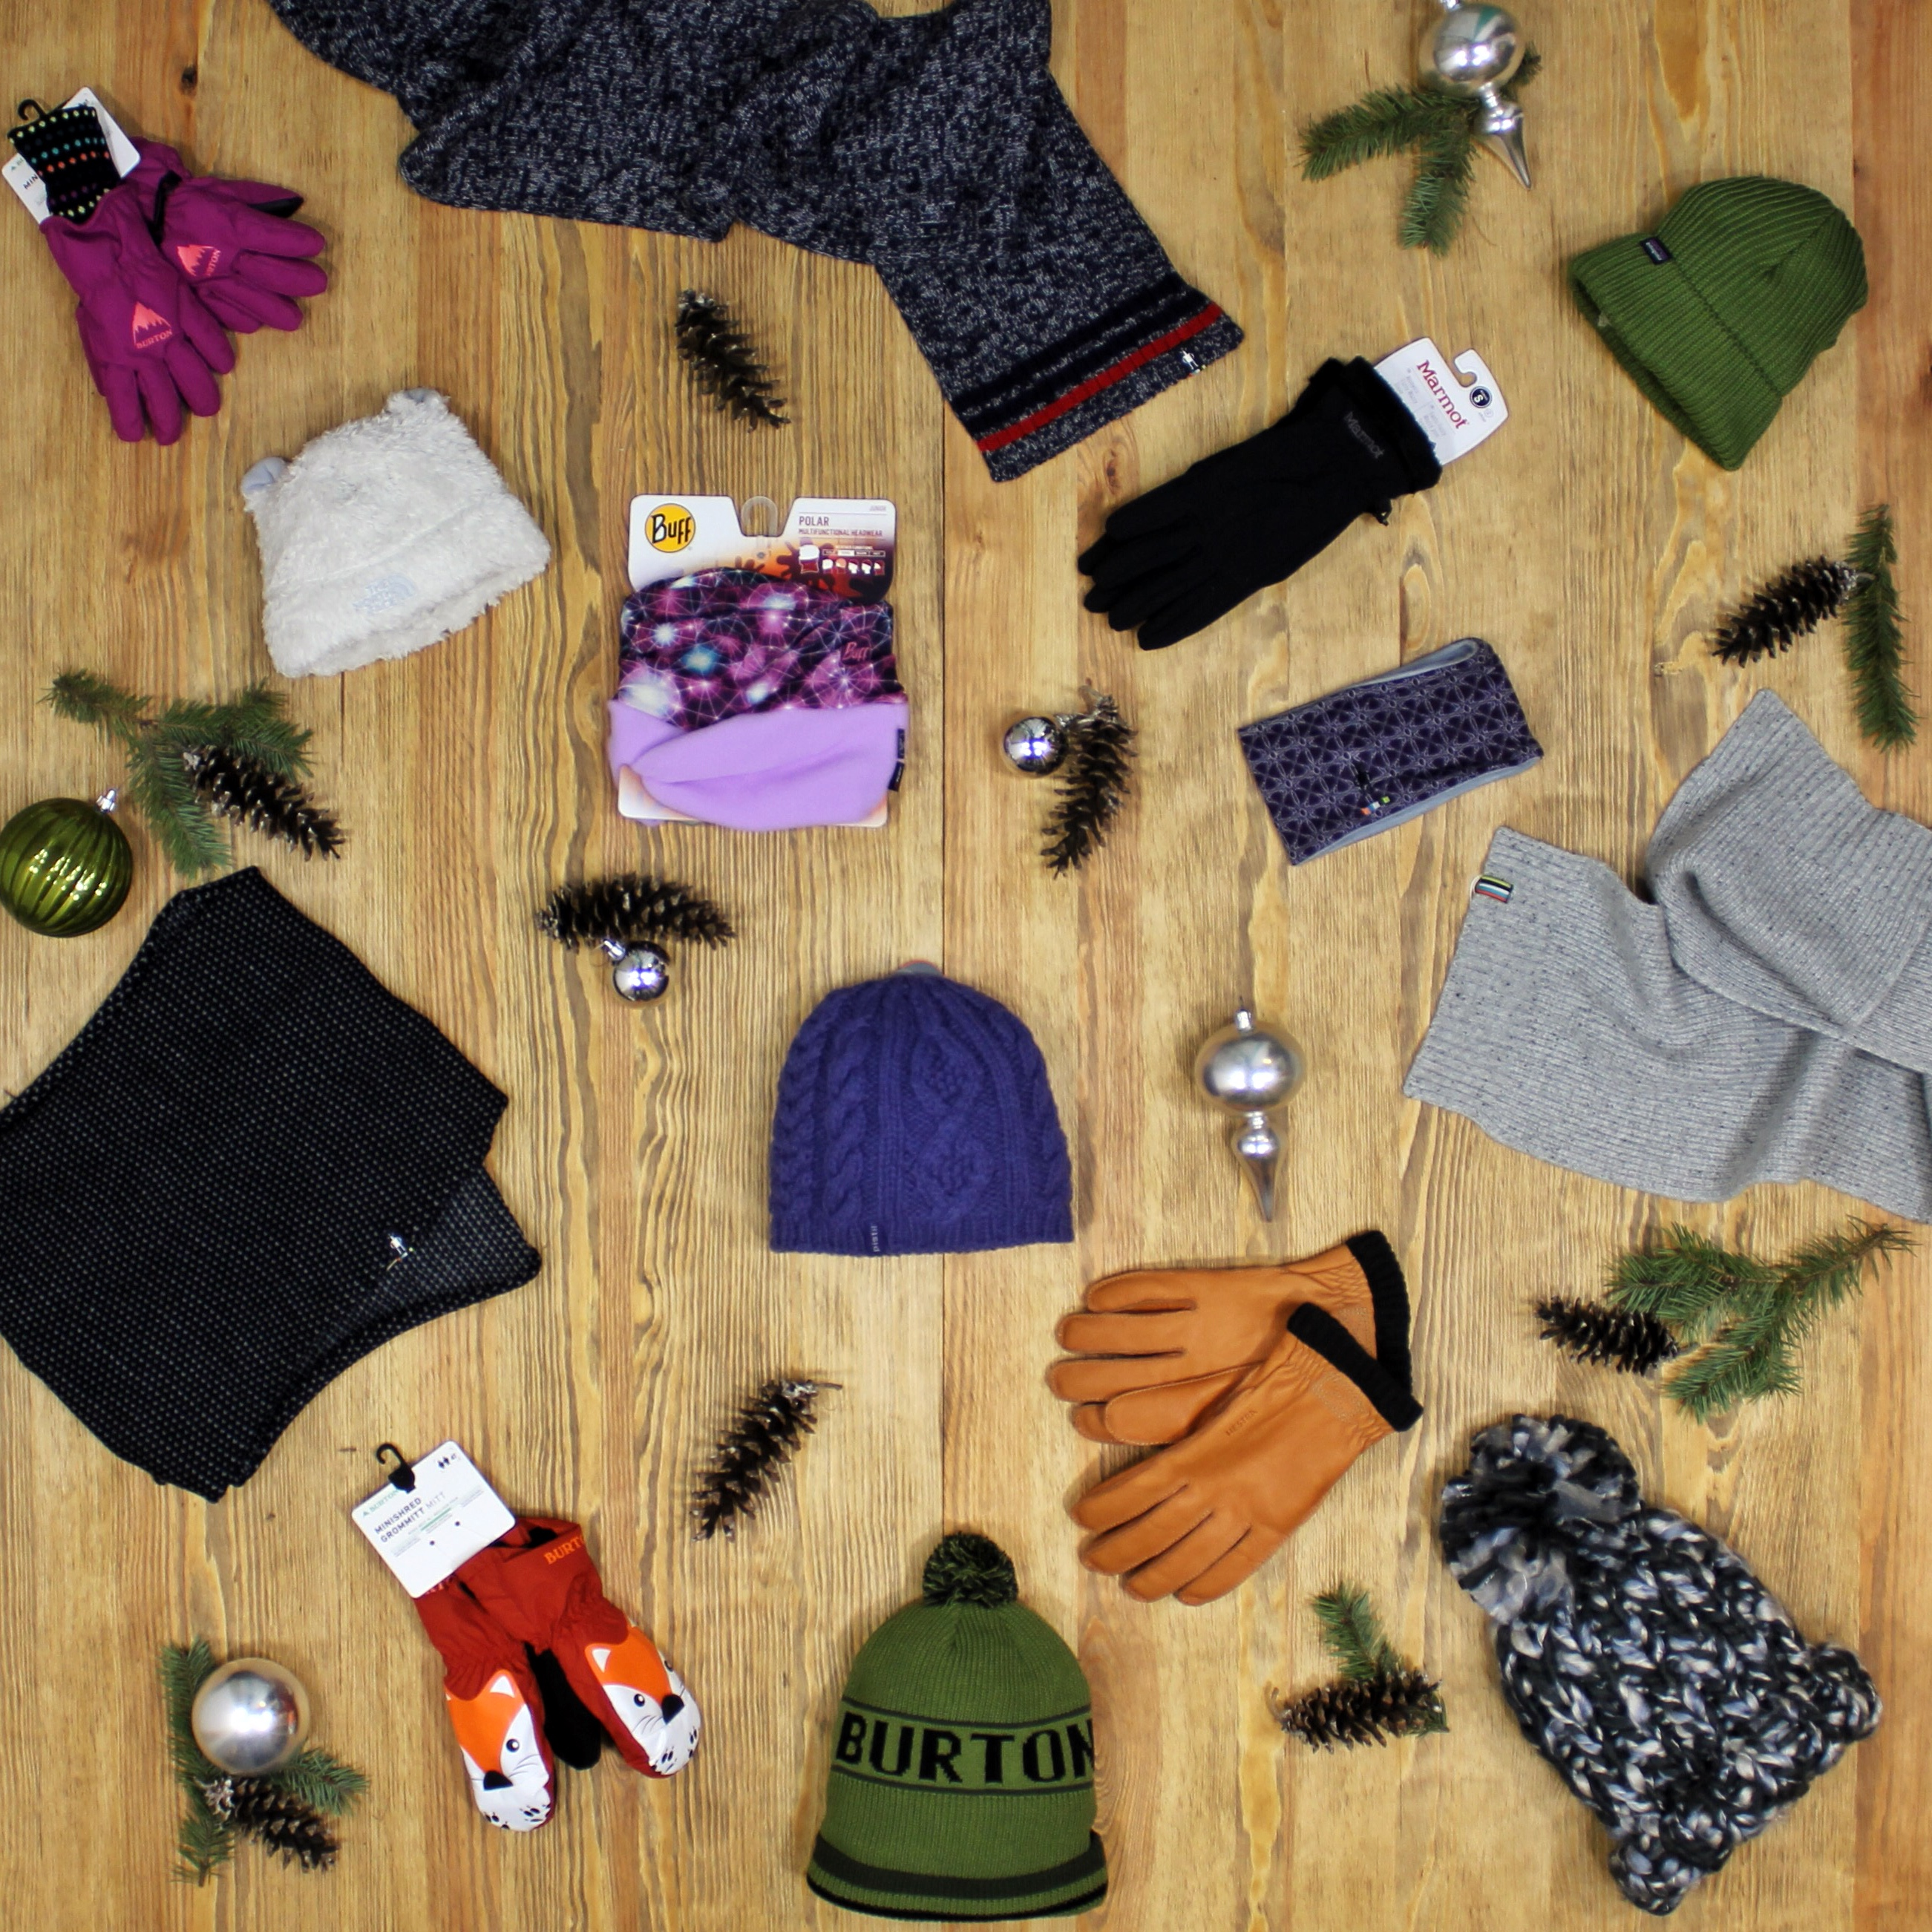 Day 23: Hats, Gloves & Scarves